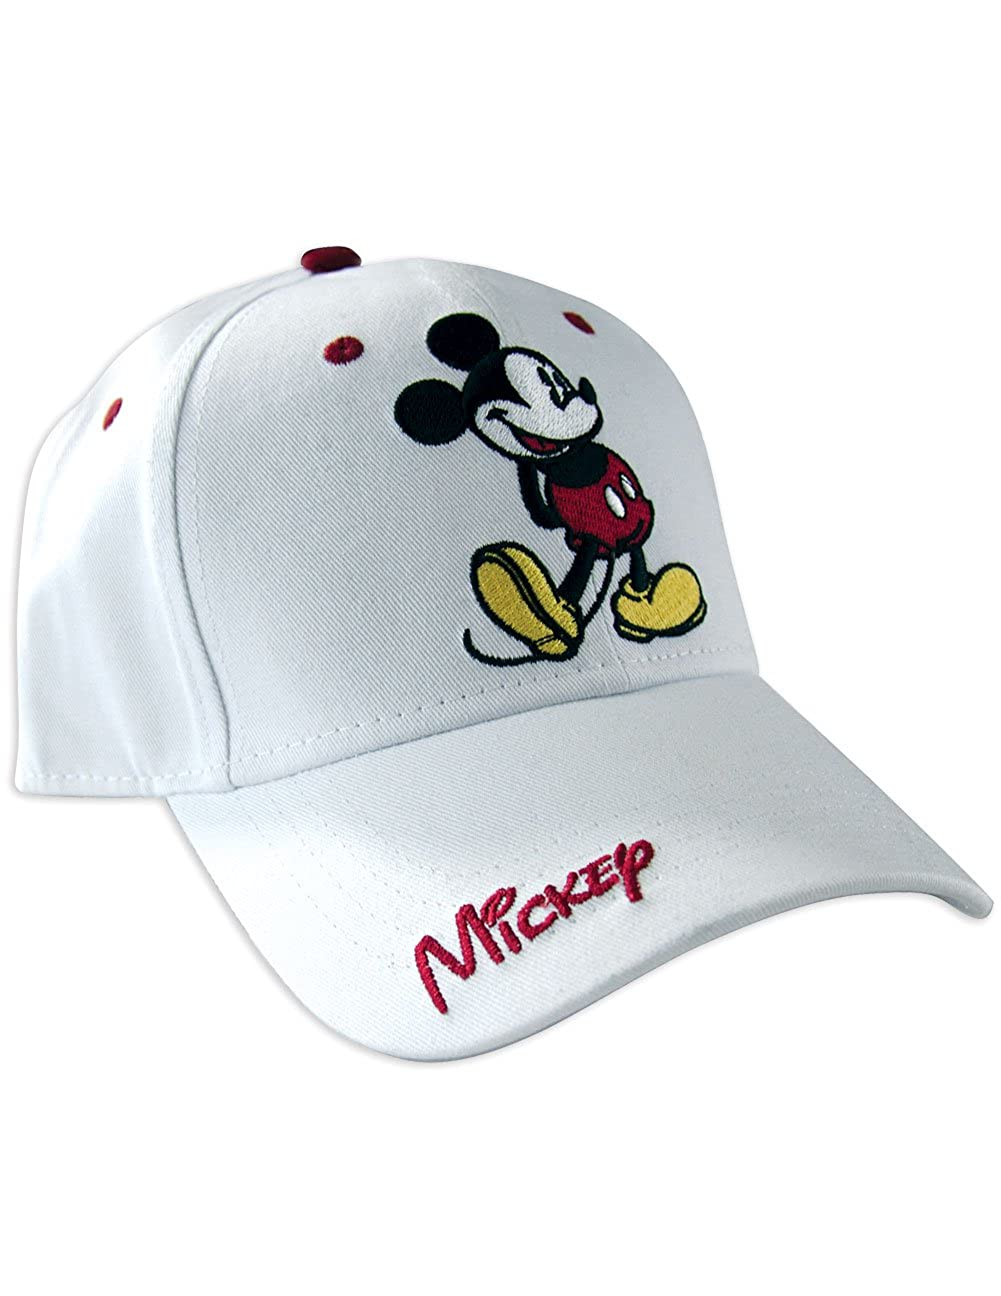 Disney Classic Mickey Mouse Adult Hat Baseball Cap, White & Red Johnson Smith Co. 42328Q1